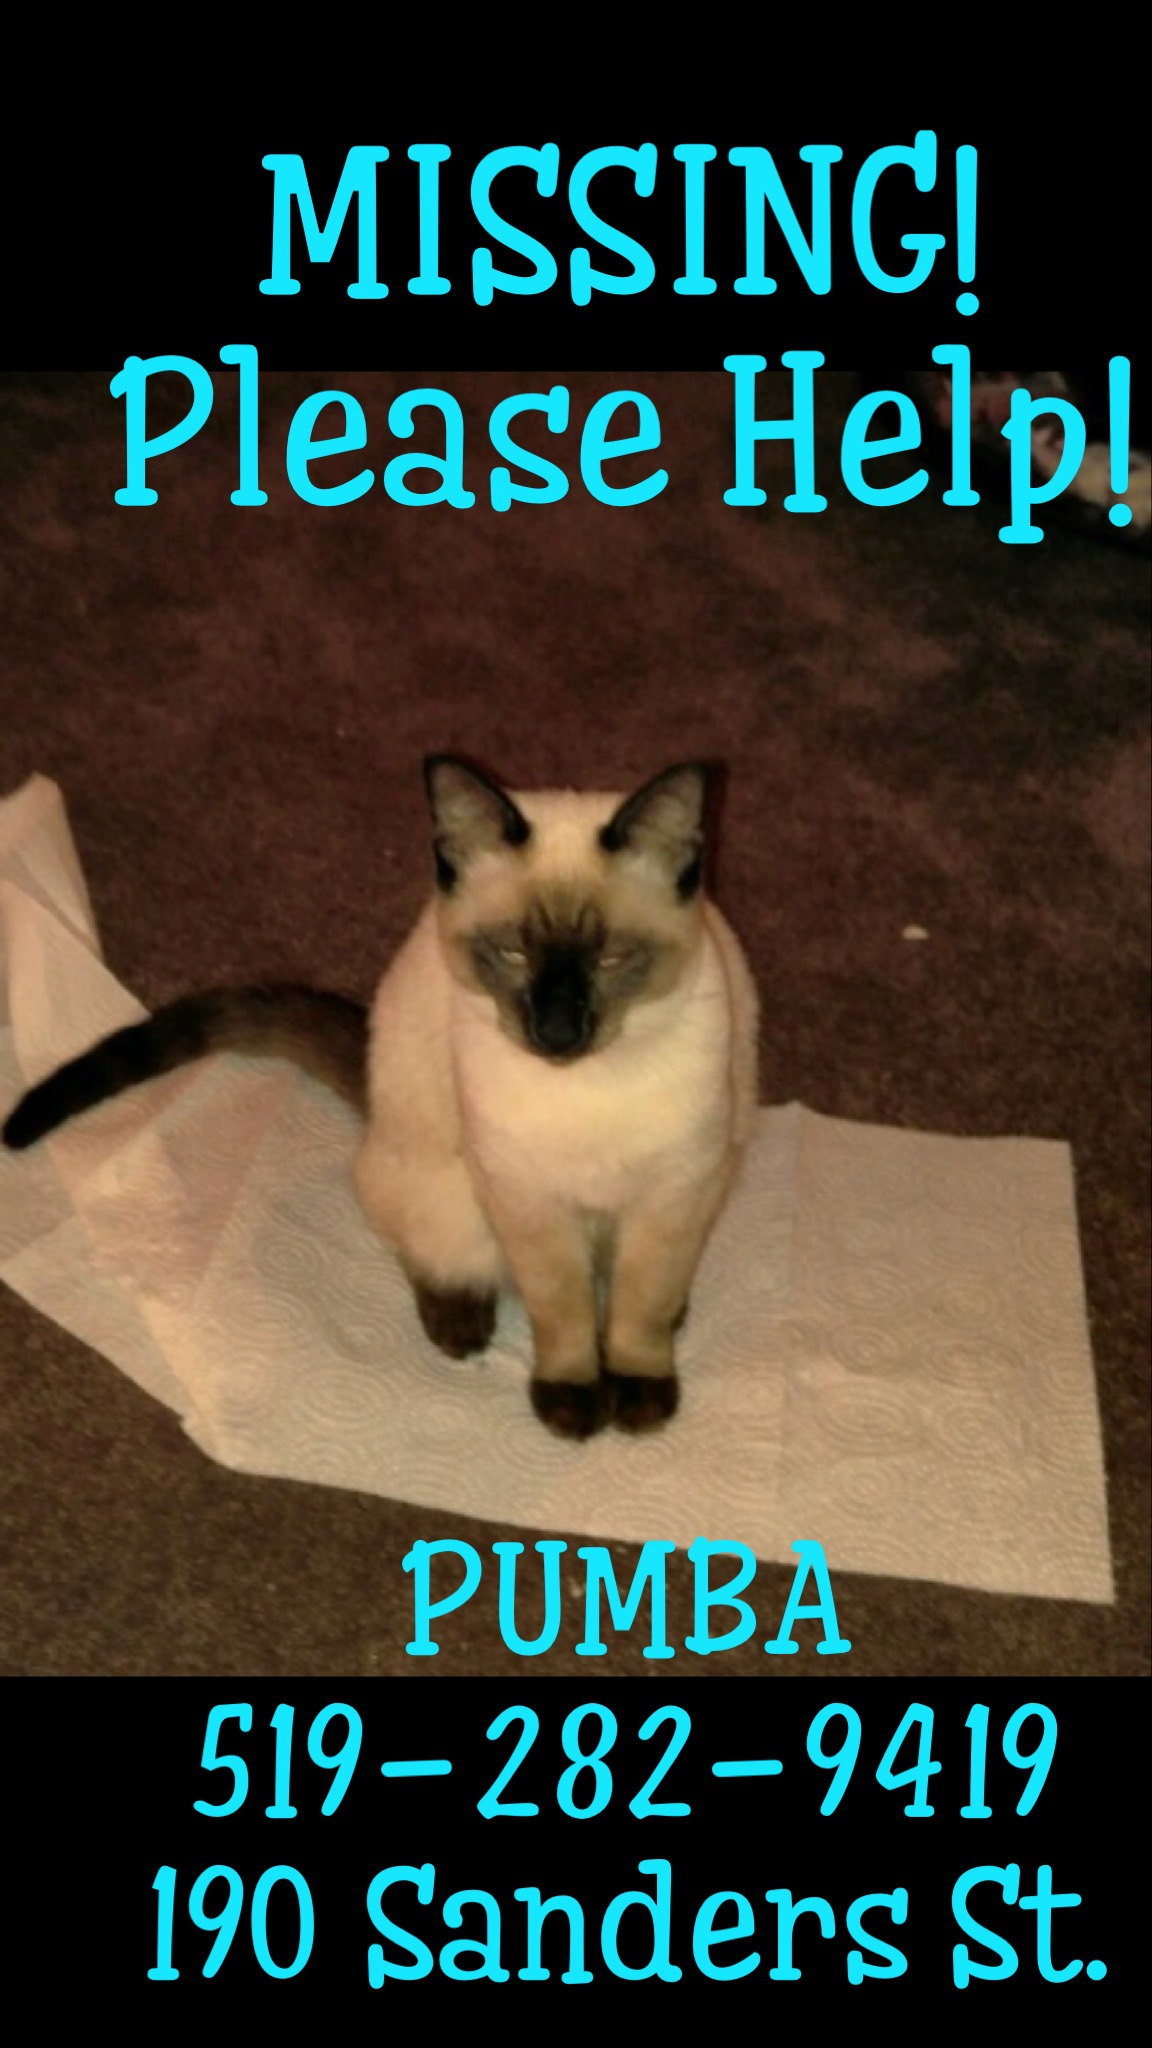 Pumba Lost Male Cat Seal Point Siamese (Beige And Dark